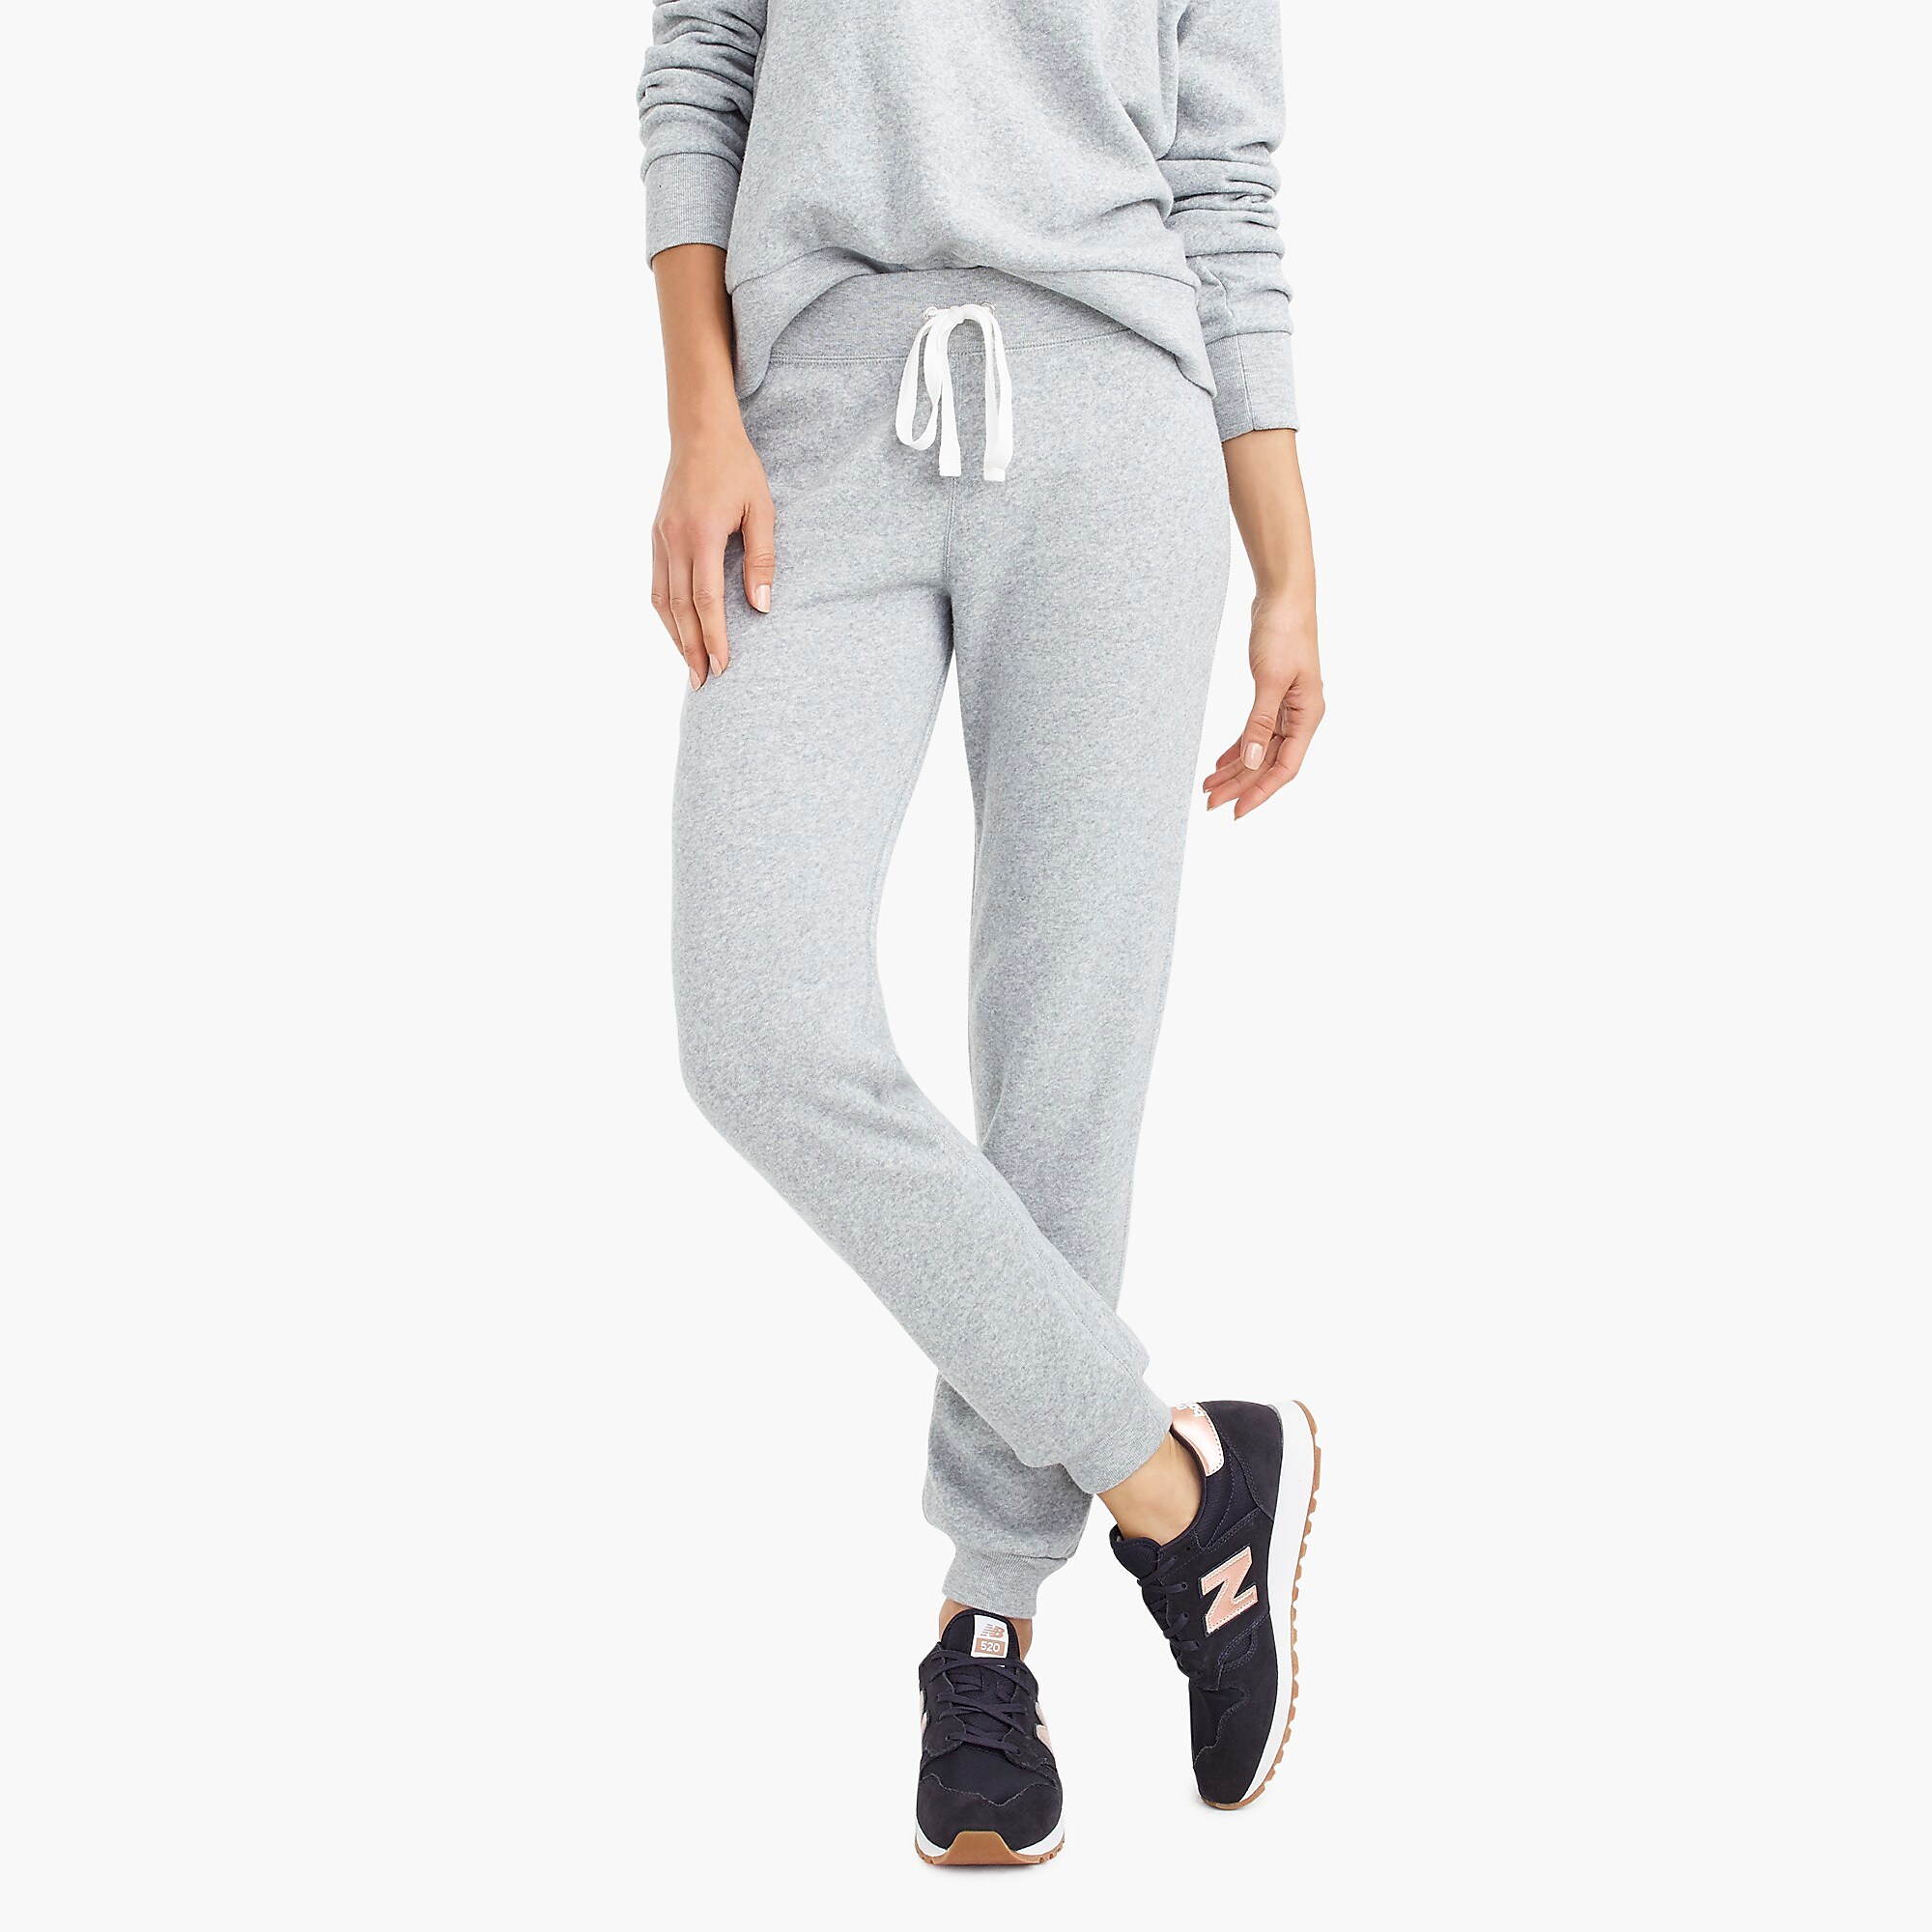 Slip into one of these adorably chic and on trend Loungewear Sets and Matching Sweatsuits, look cute as could be from the comfort of your sofa, and and stay on budget. These adorable and under $50 cozy and chic sets will get you through the season in total comfort! | glitterinc.com | @glitterinc // J.Crew Supersoft Fleece Sweatpant + J.Crew Pocket Sweatshirt